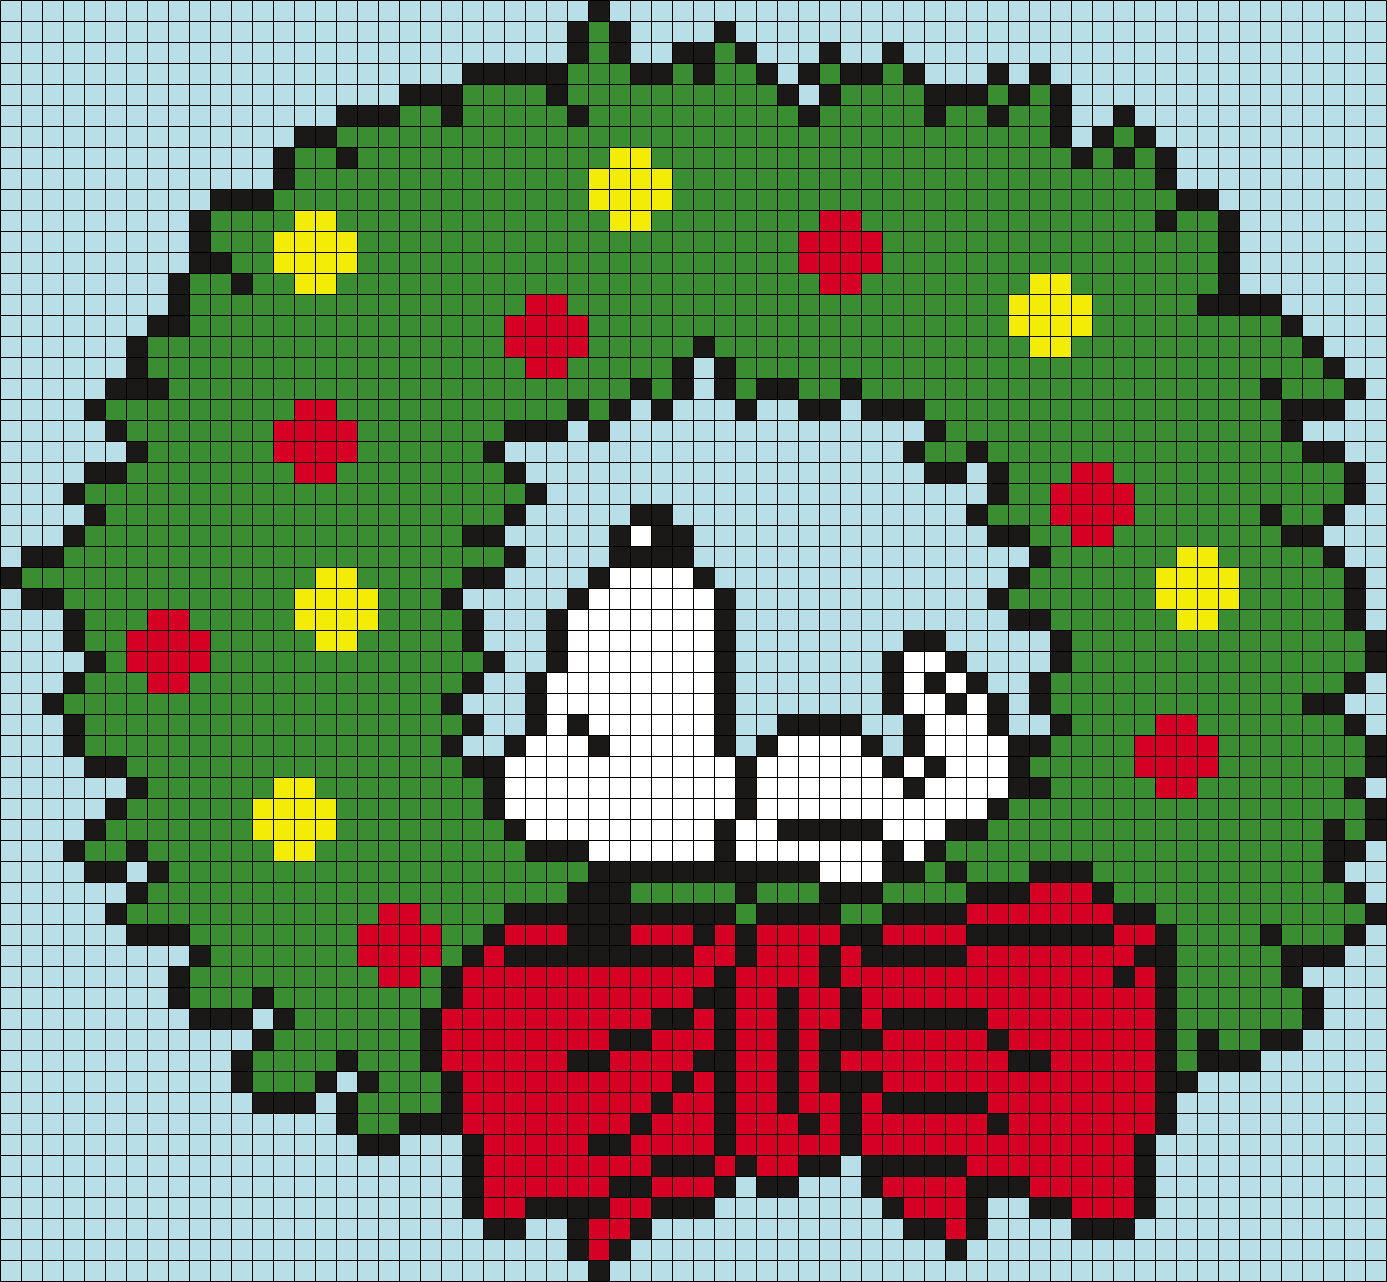 Snoopy Wreath From Peanuts Square Grid Perler Bead